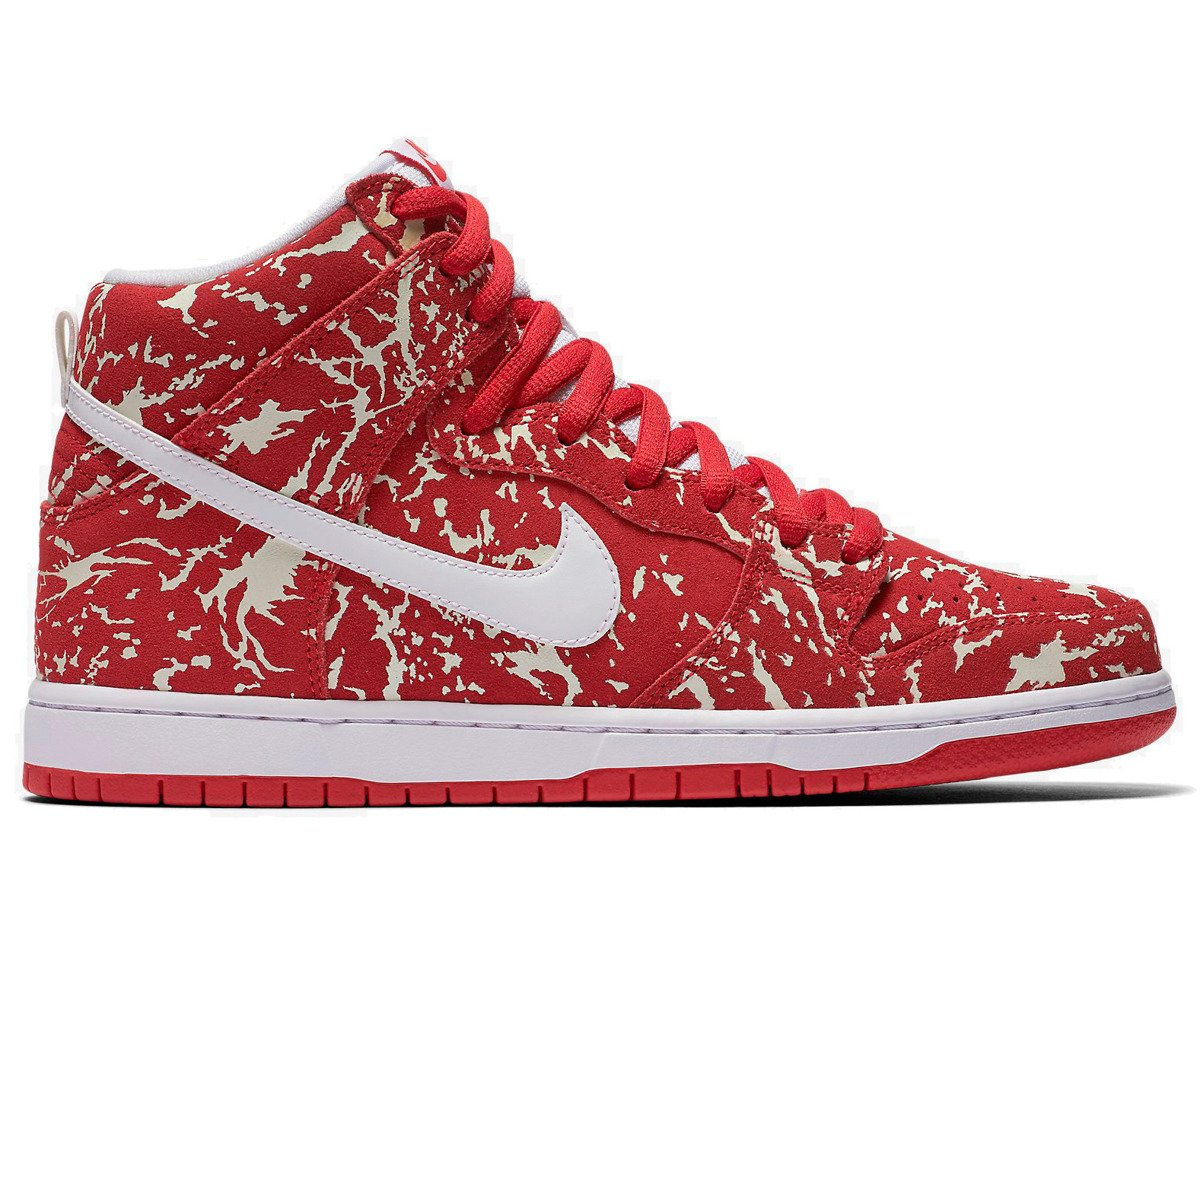 buy online e3290 b77e0 Buty Nike SB Dunk High Premium challenge redwhite-challenge red-white red   Shoes  Nike SB SALE  Sale 50% -70%  Shoes Brands  Nike SB Buty  Nike  SB ...